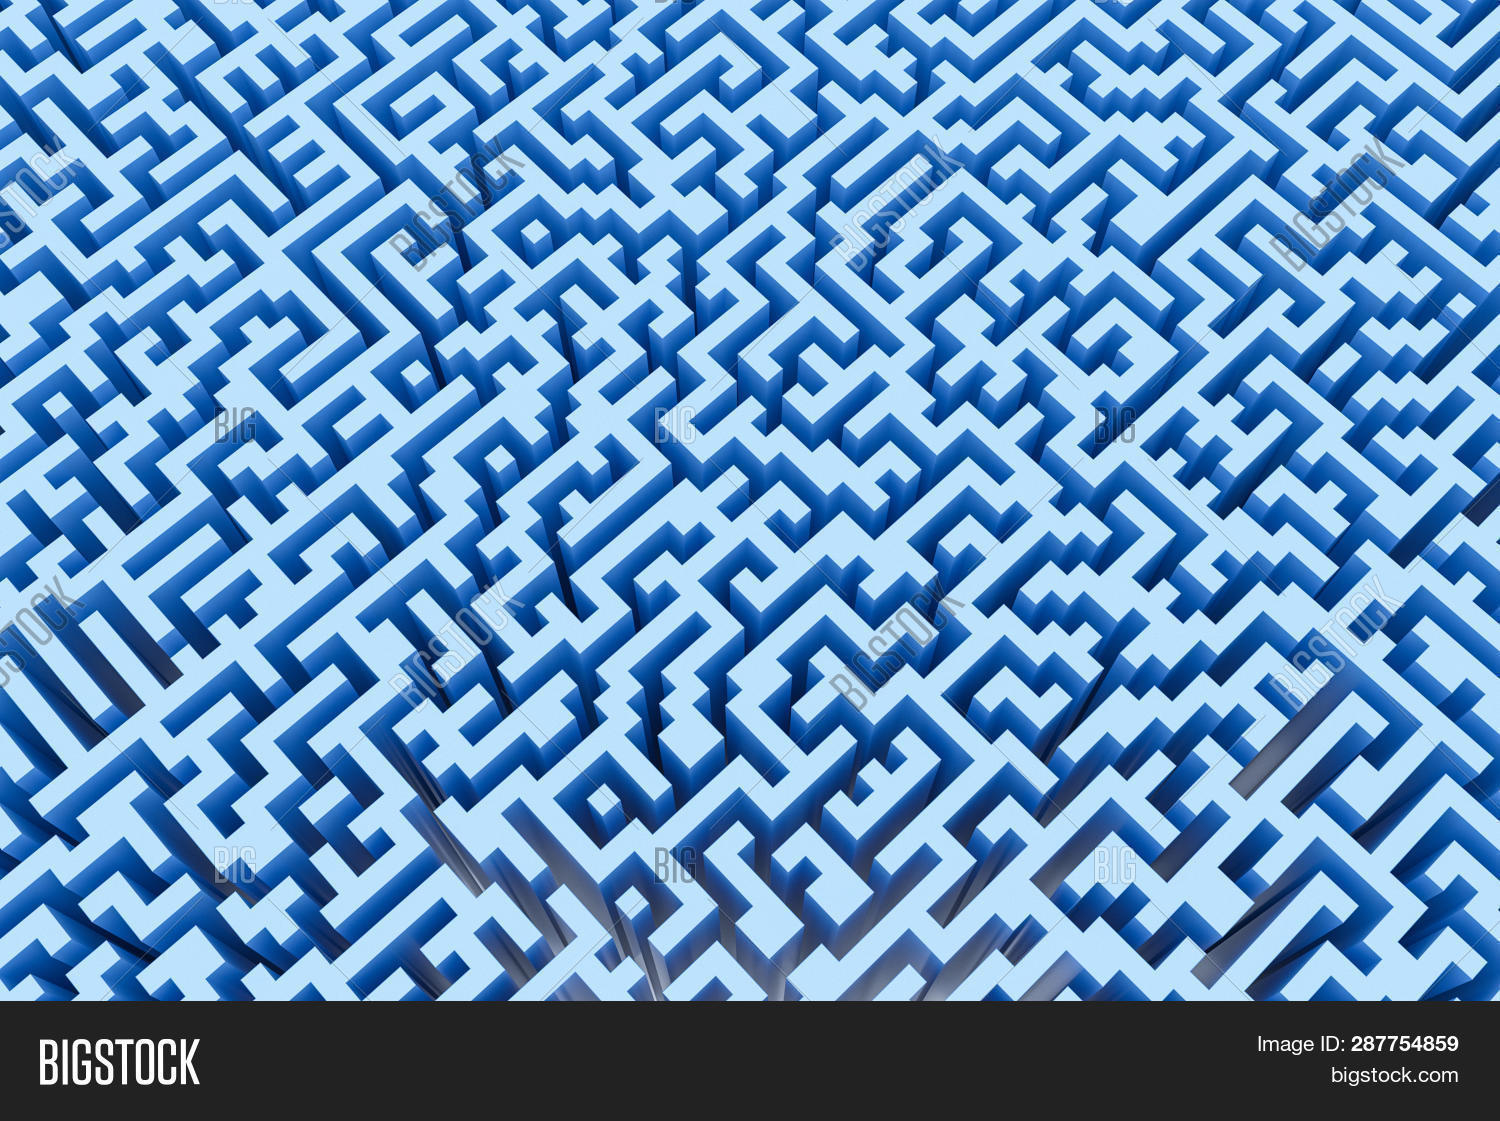 The Texture Of The Three-dimensional Model Of The Maze In Blue, Perspective View. Three-dimensional